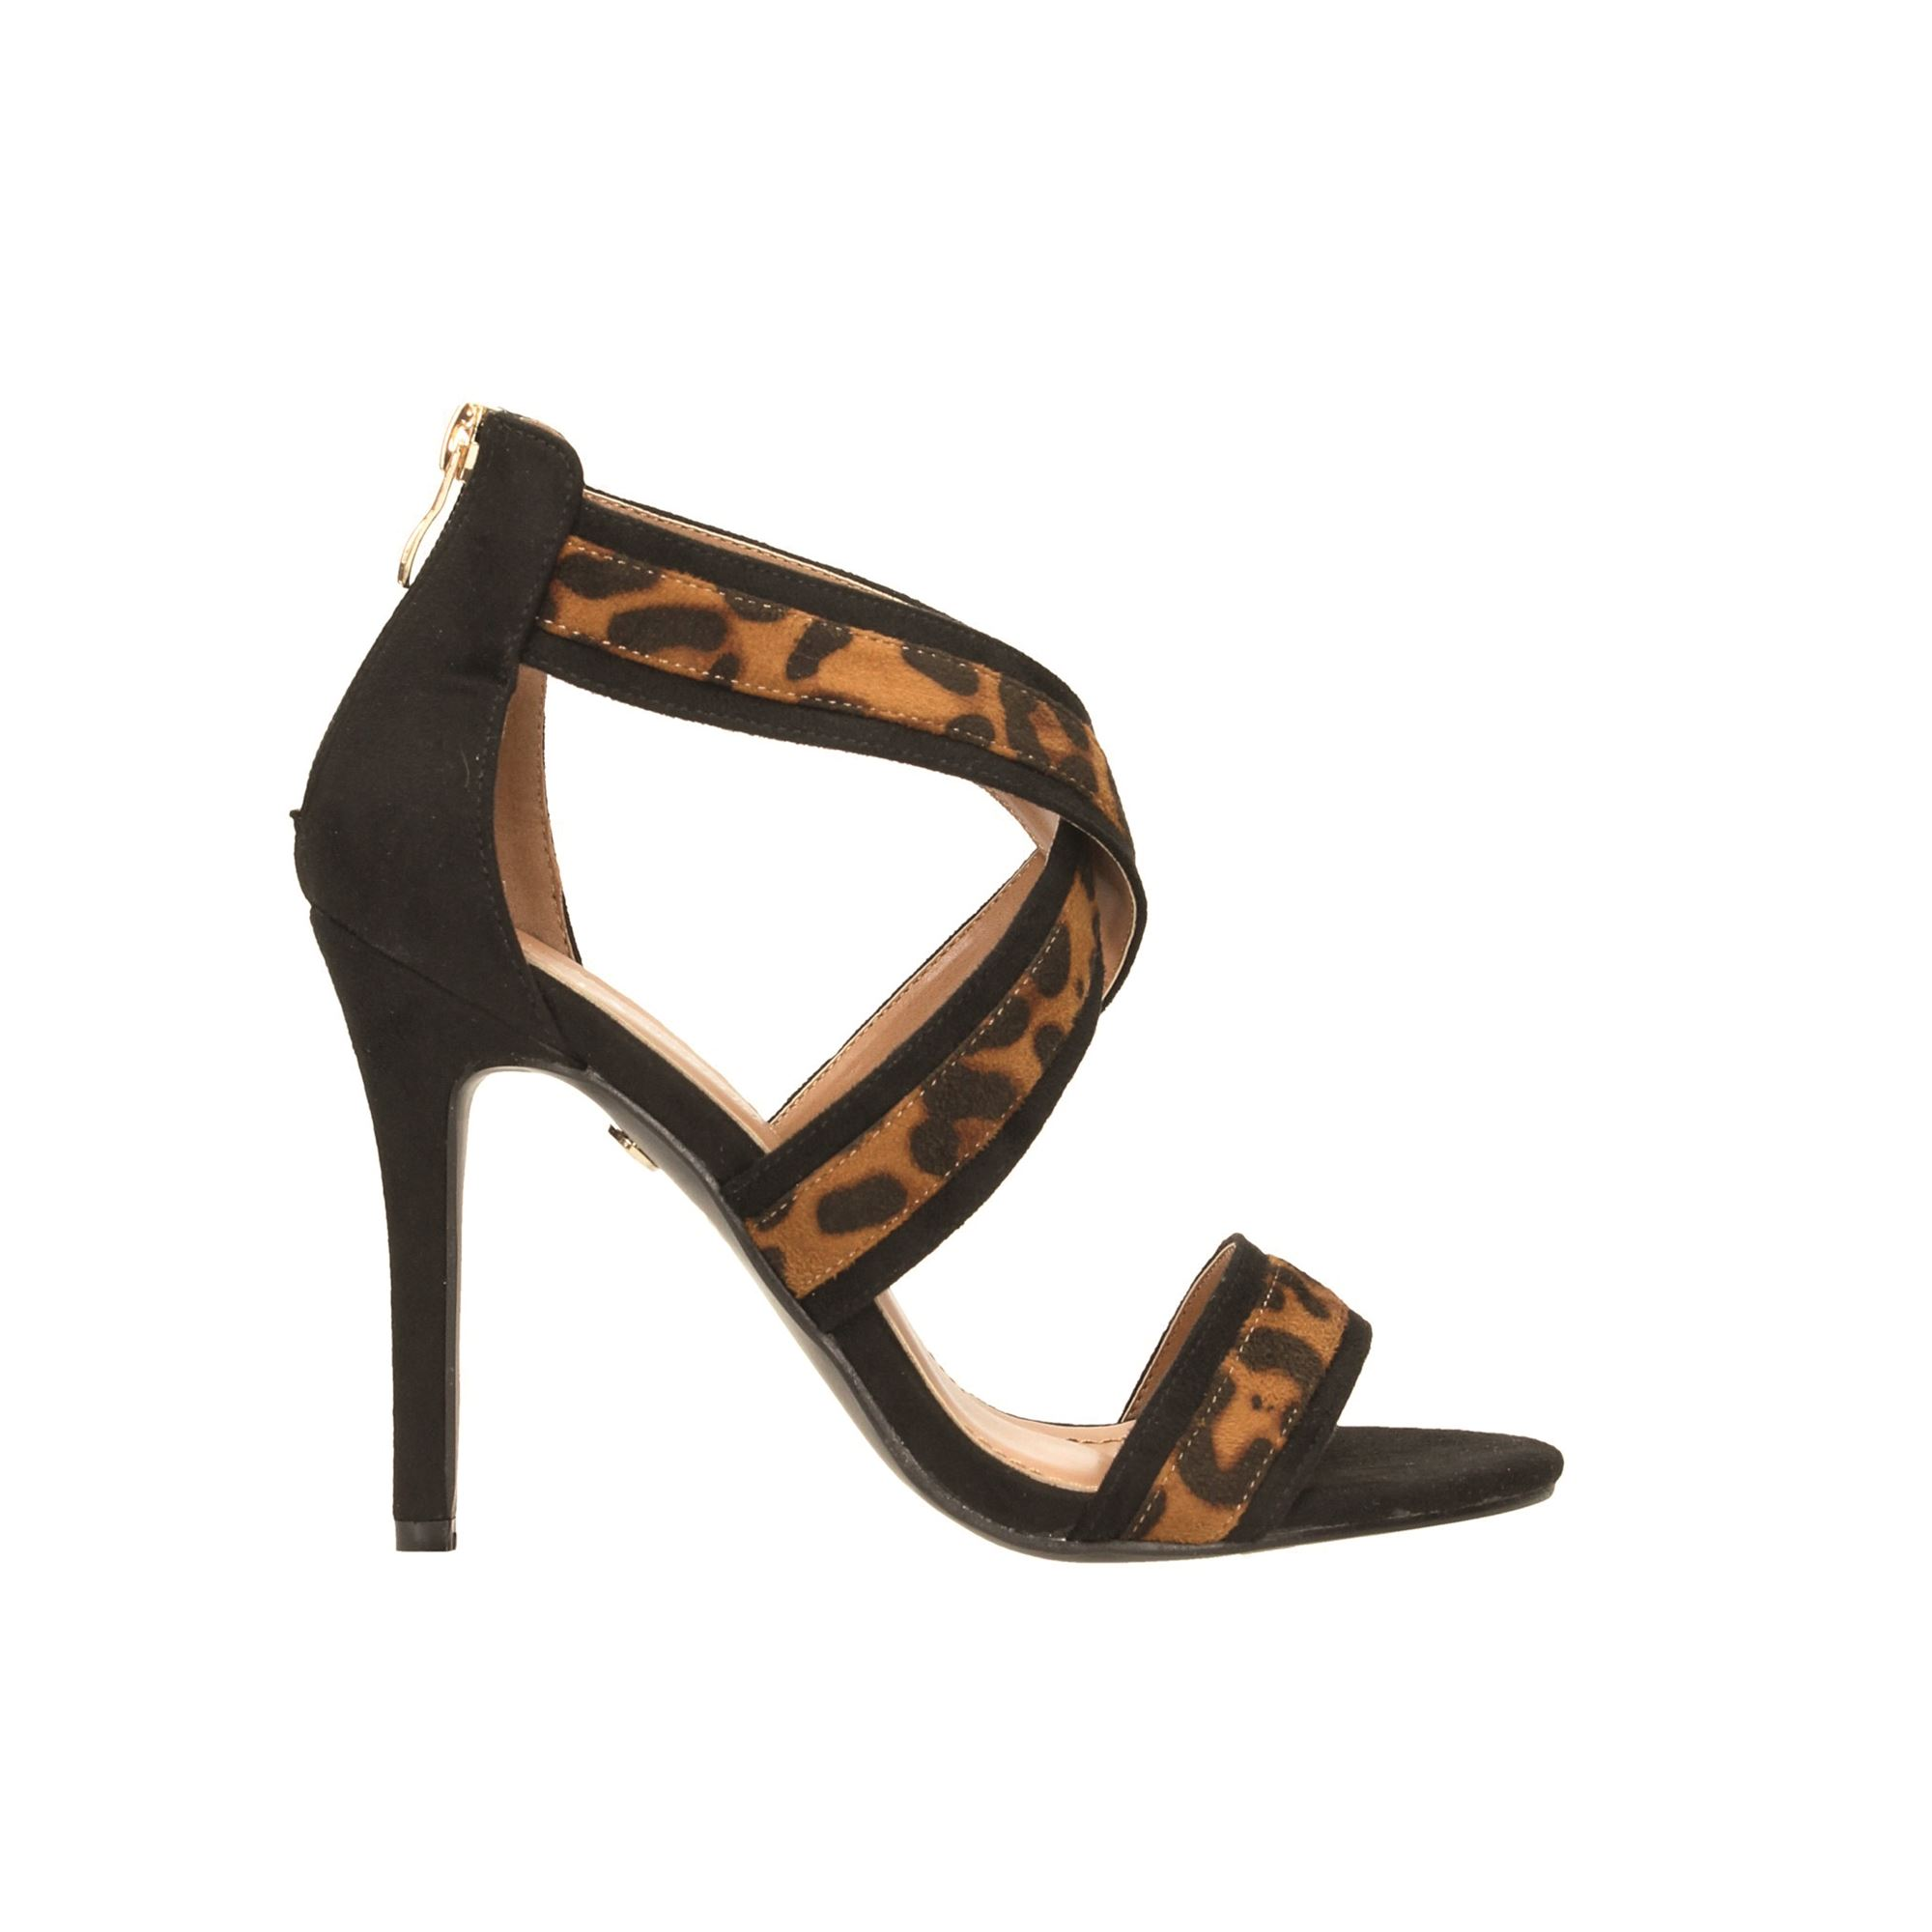 Tata Italia Shoes Woman Sandali Leopard 2275-8